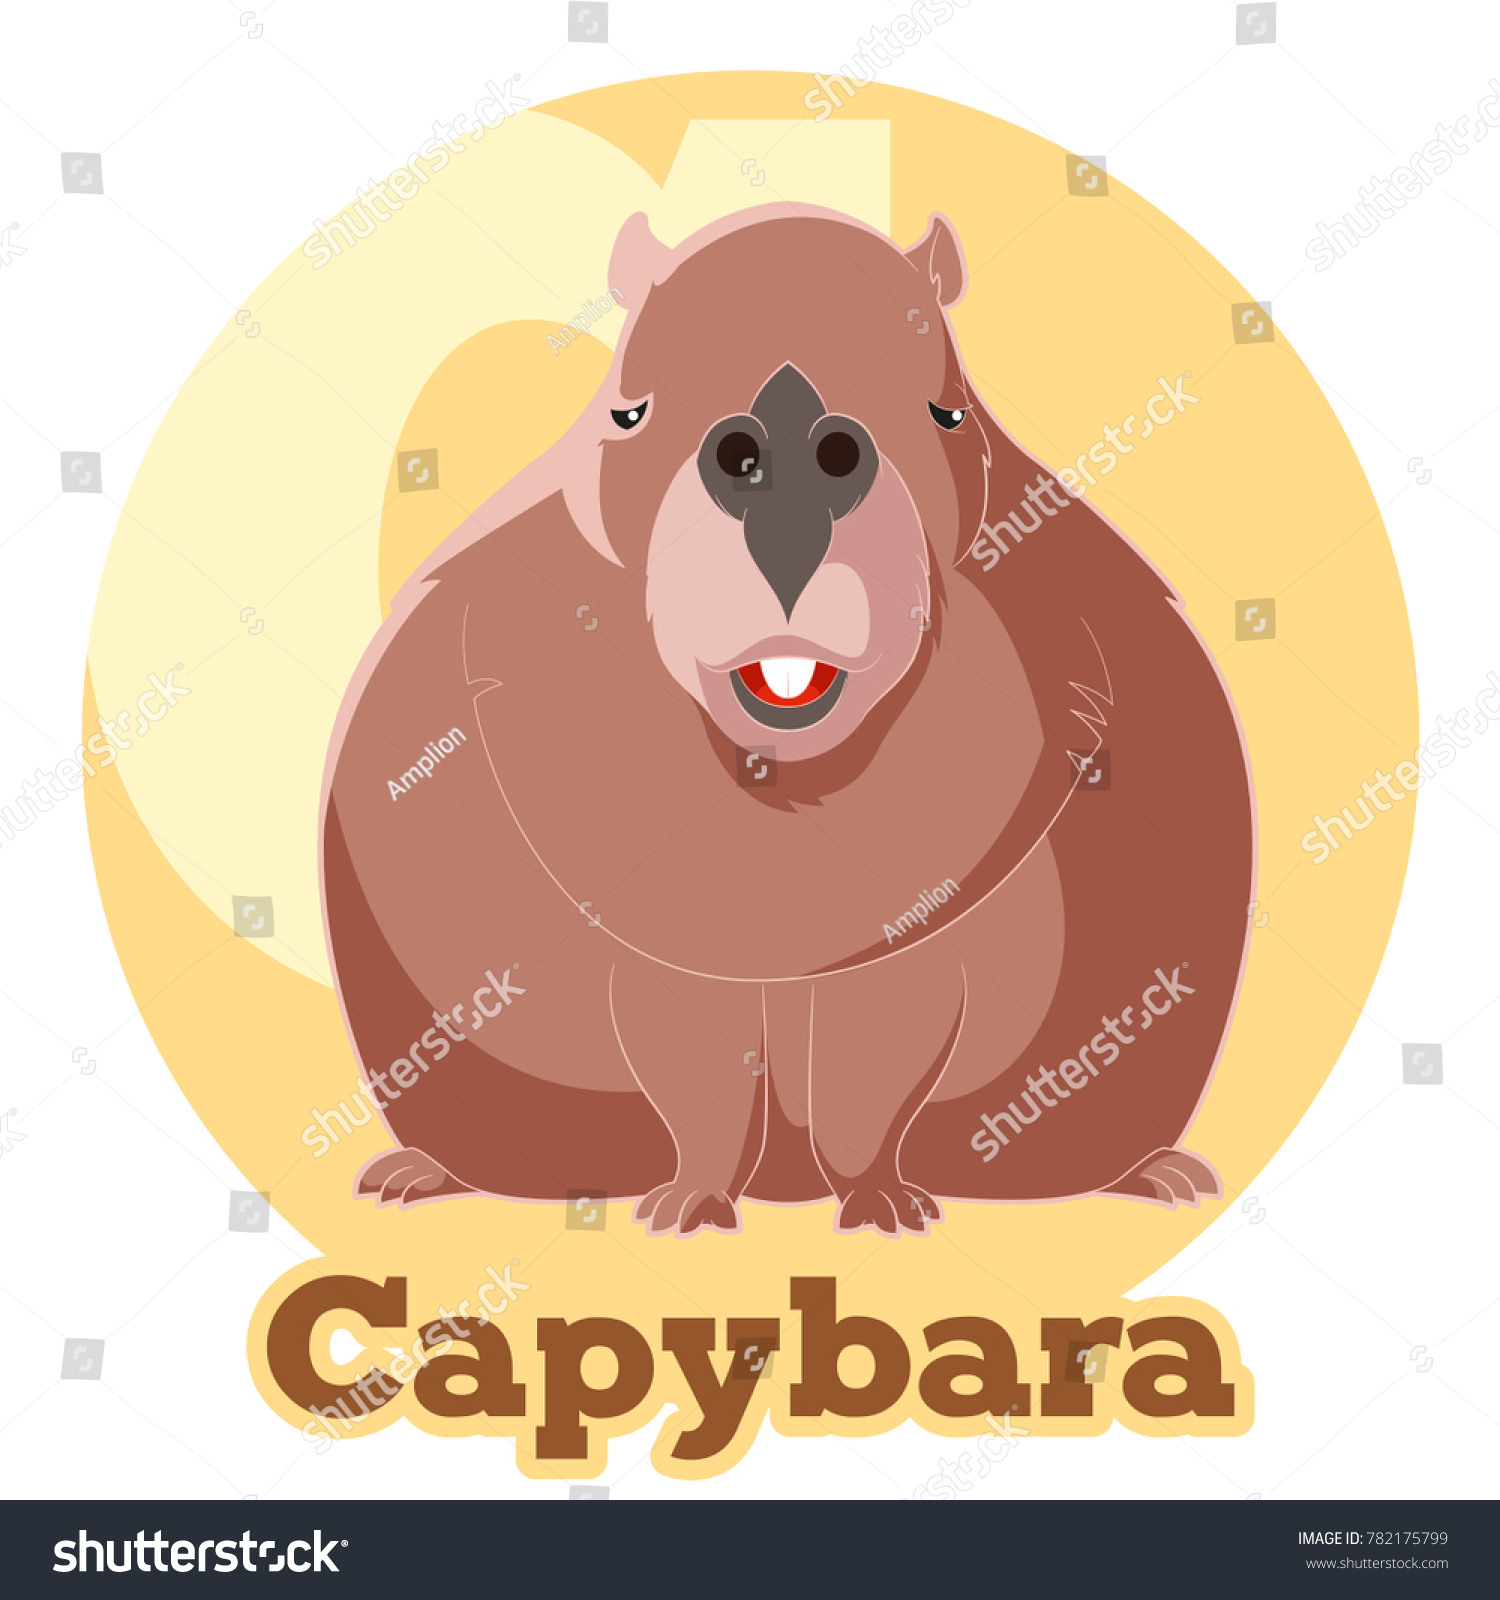 ABC Cartoon Capybara Ilustración de stock782175799: Shutterstock